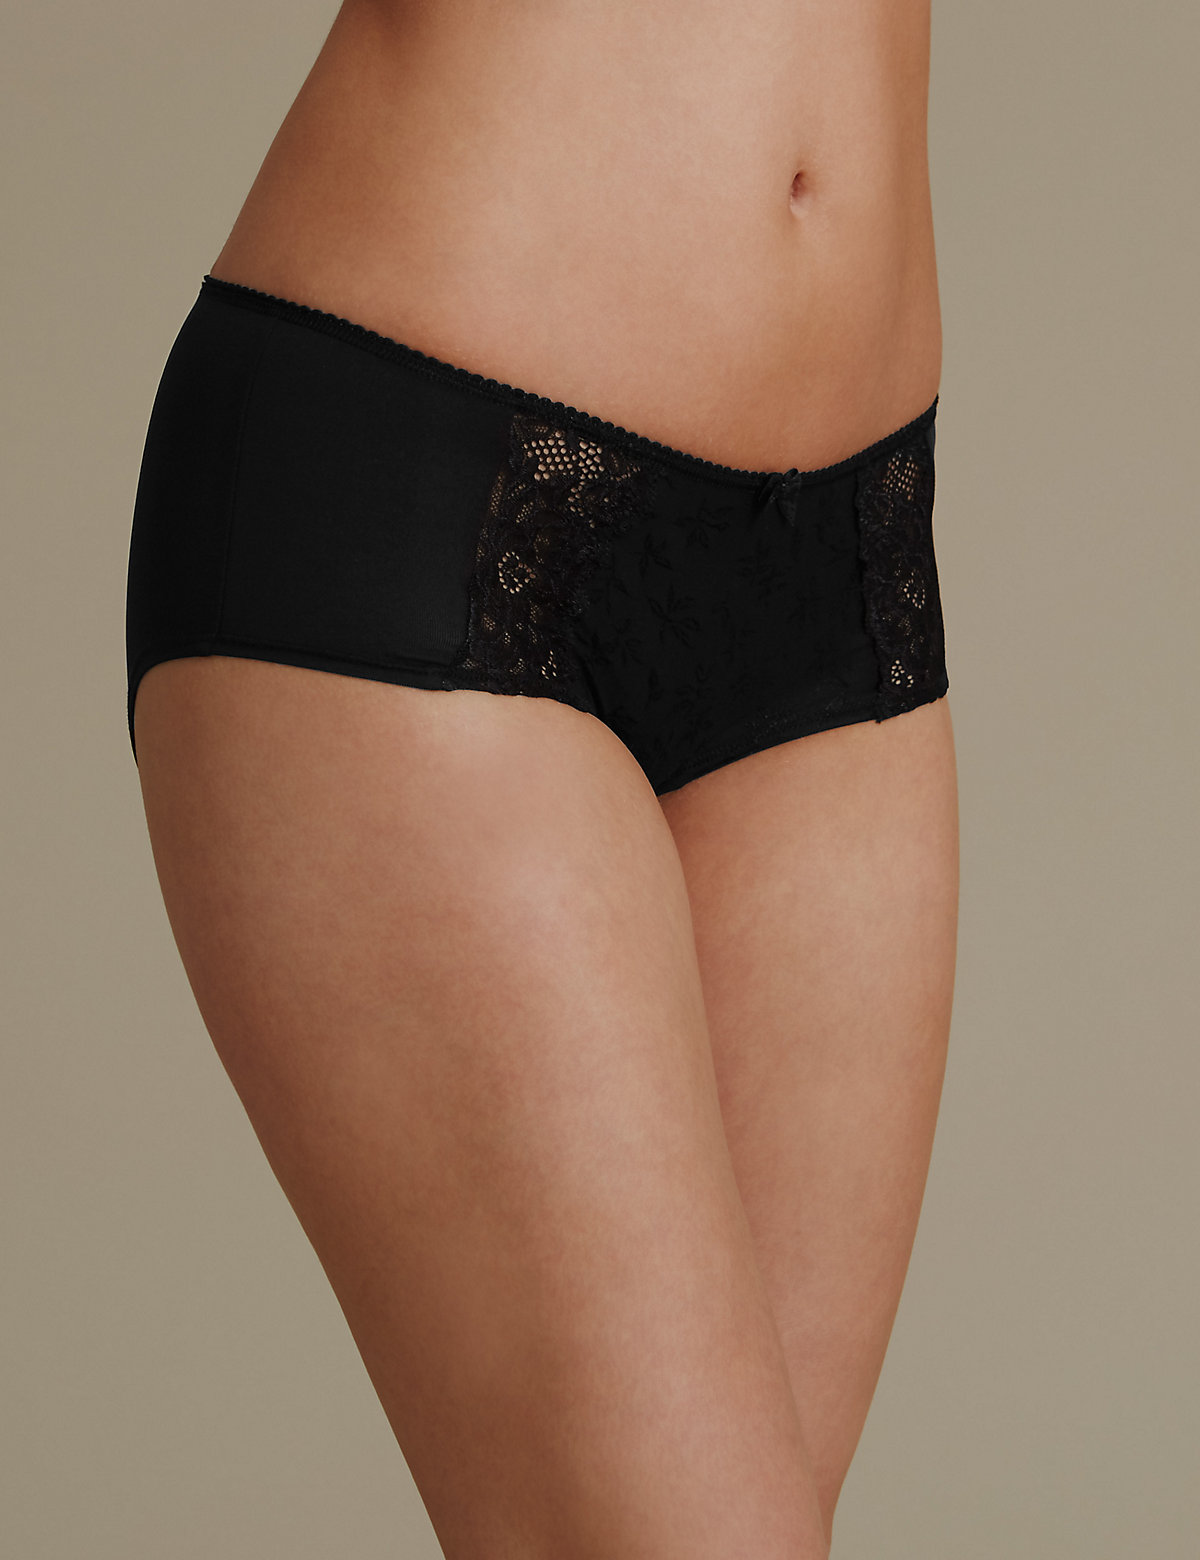 M&s Collection Jacquard & Lace Low Rise Short Knickers